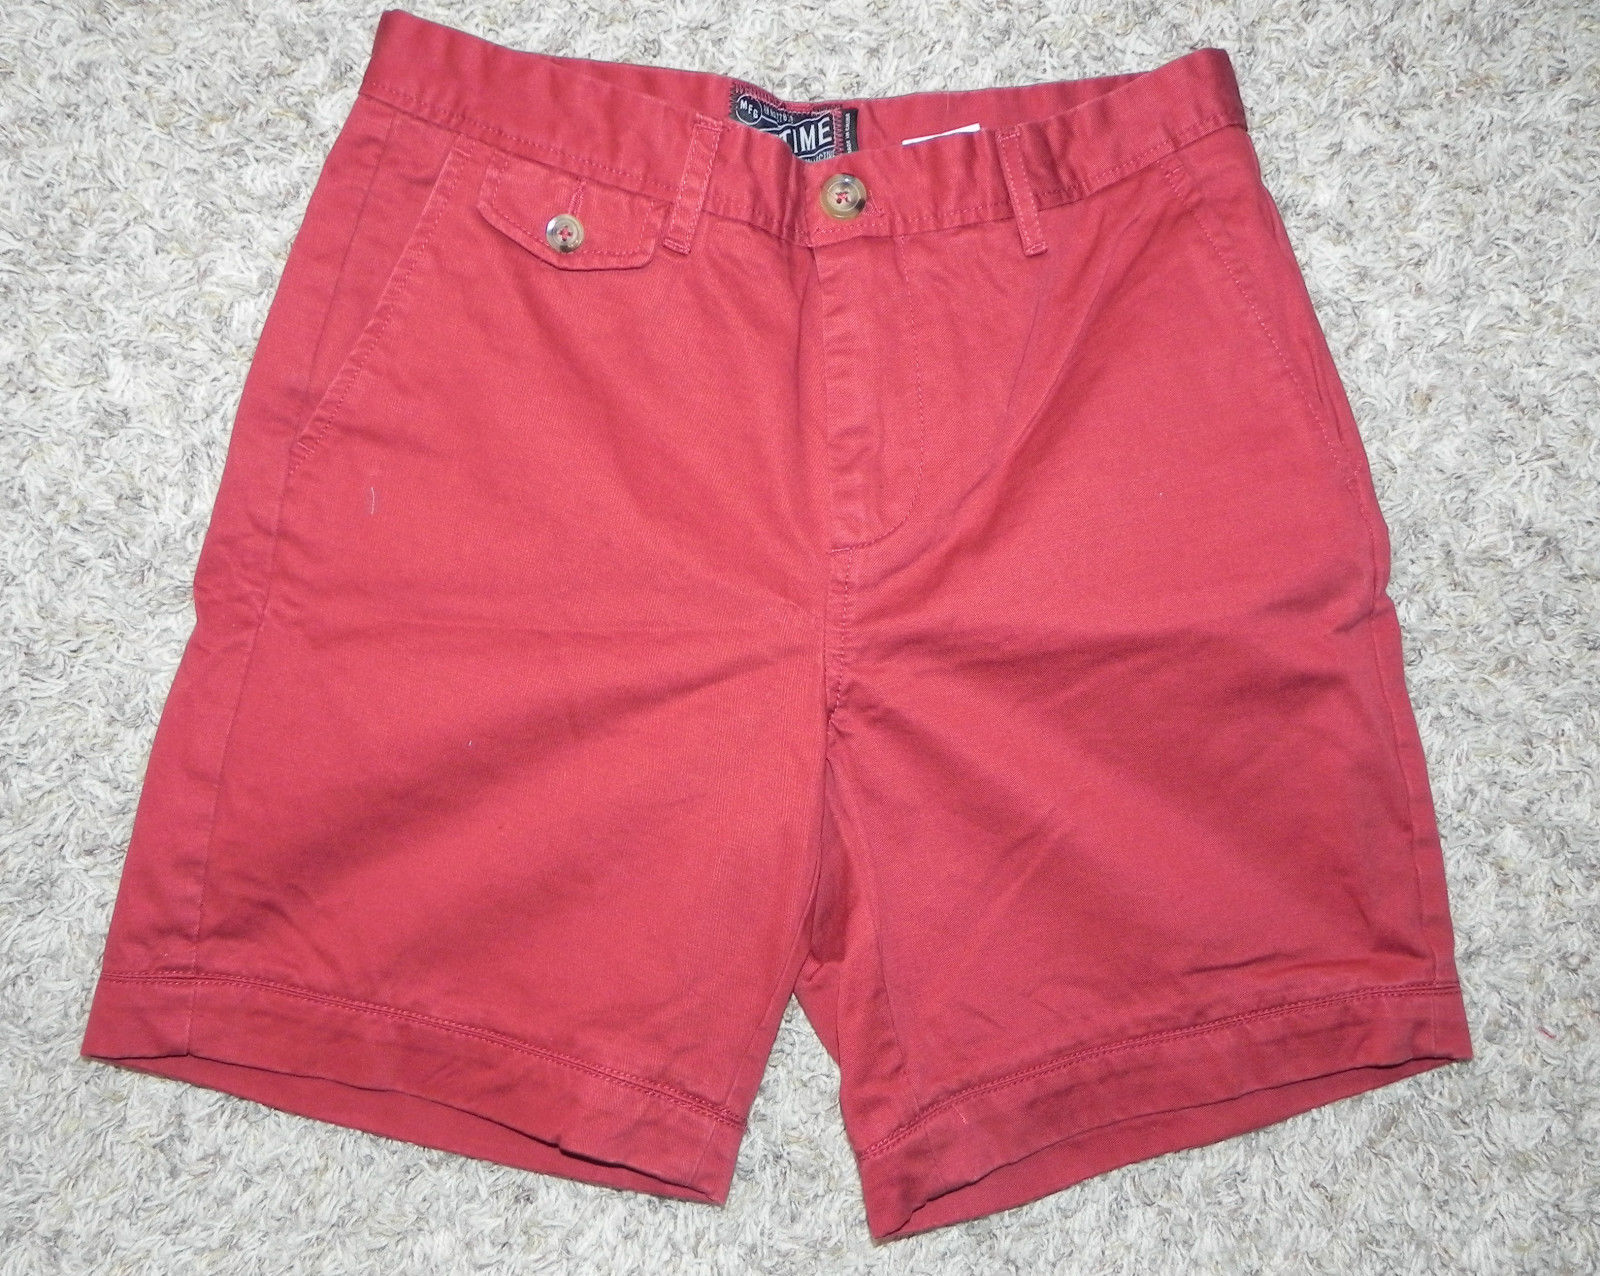 Primary image for Lifetime Shorts Mens Size 28 Casual NWT $54